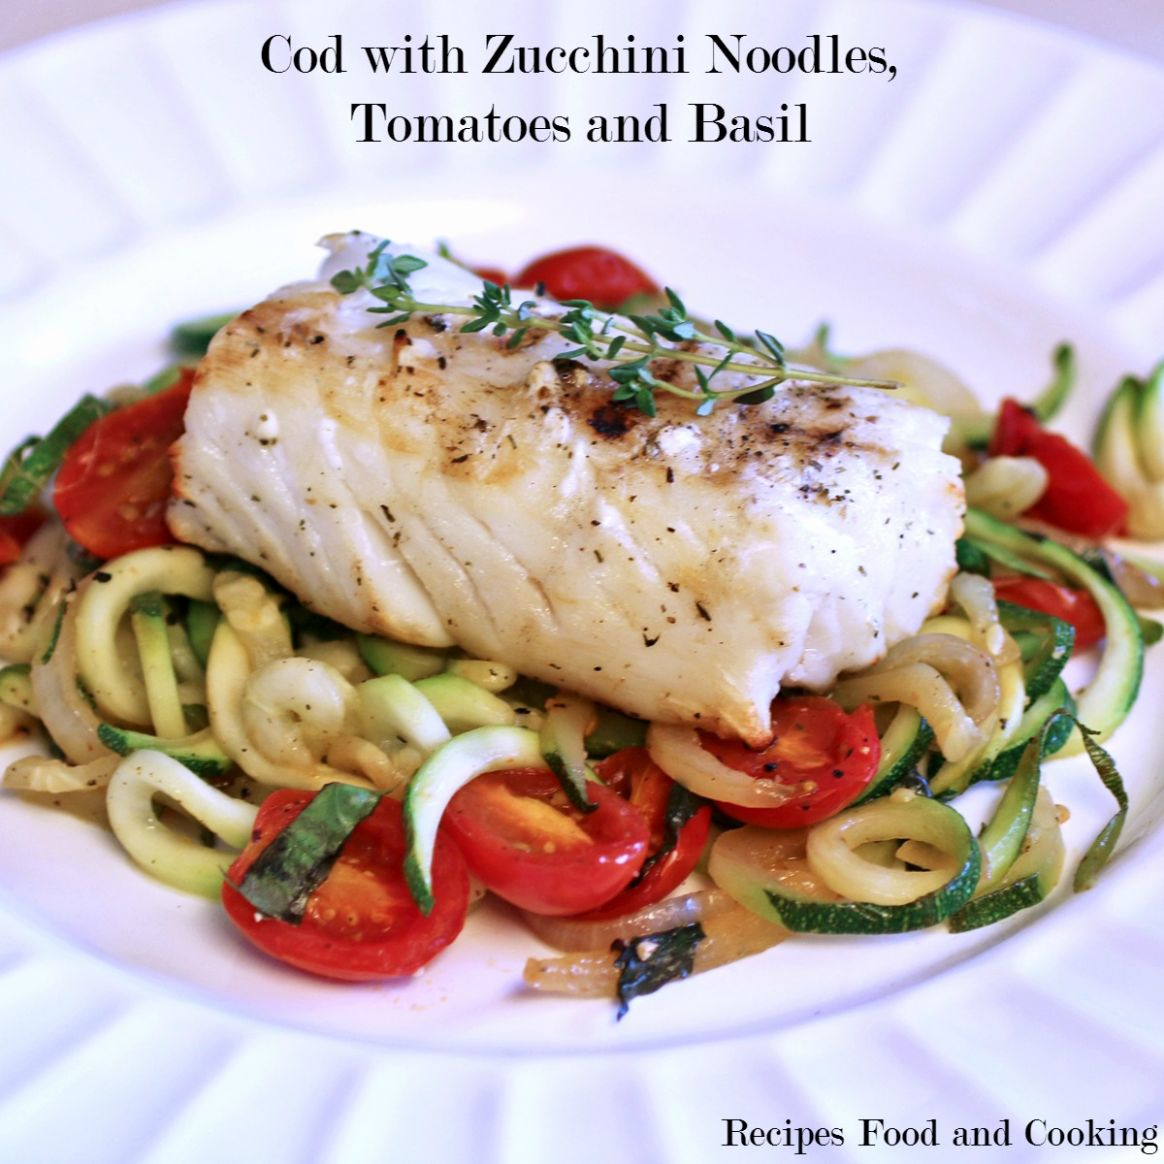 Cod with Zucchini Noodles, Tomatoes and Basil - Fish Recipes With Zucchini